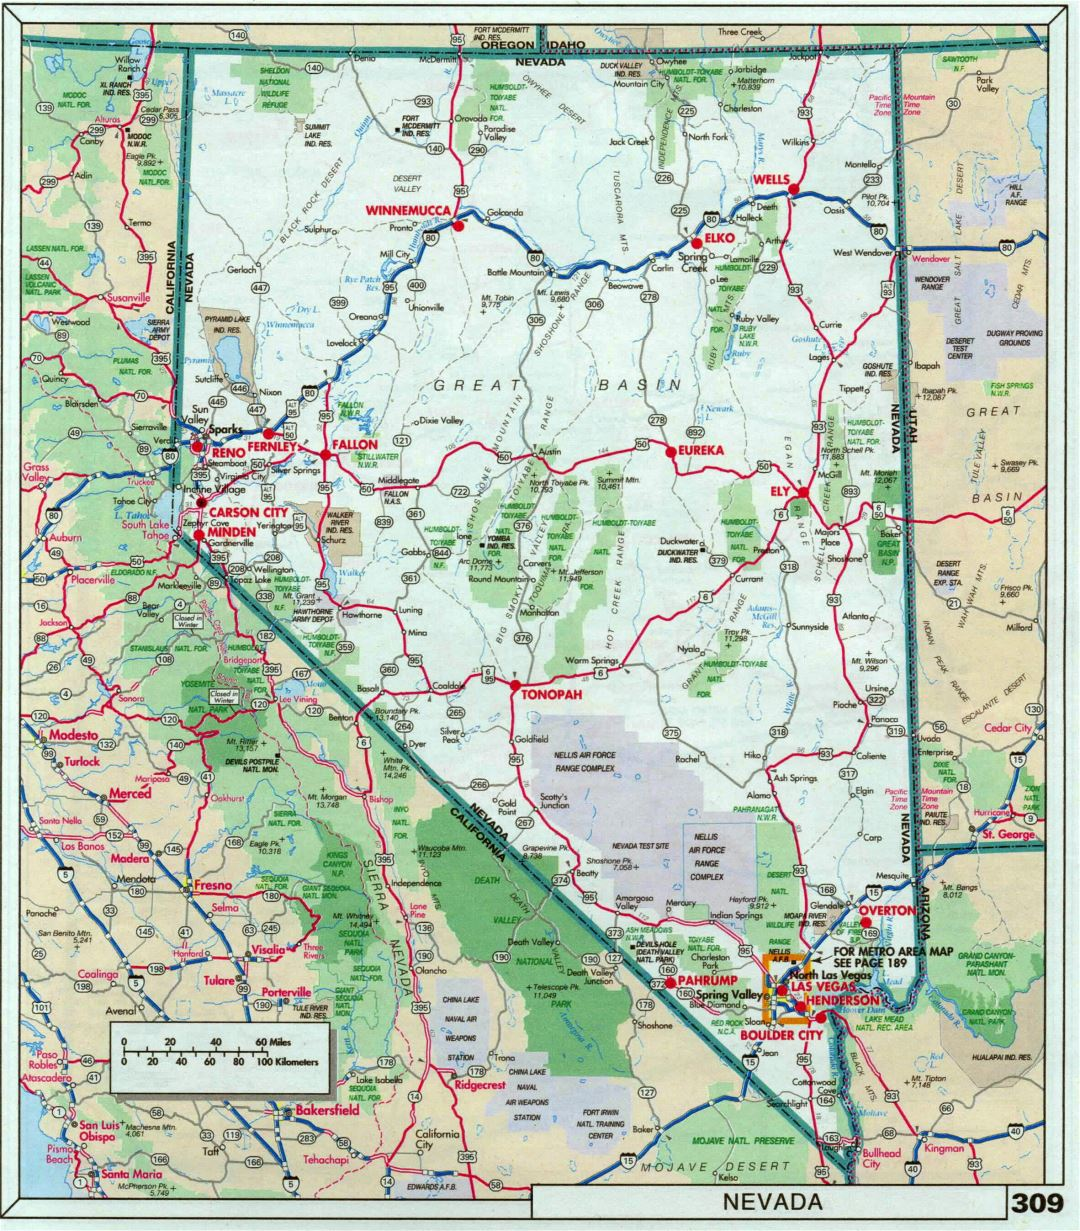 Large detailed roads and highways map of Nevada state with national parks and cities